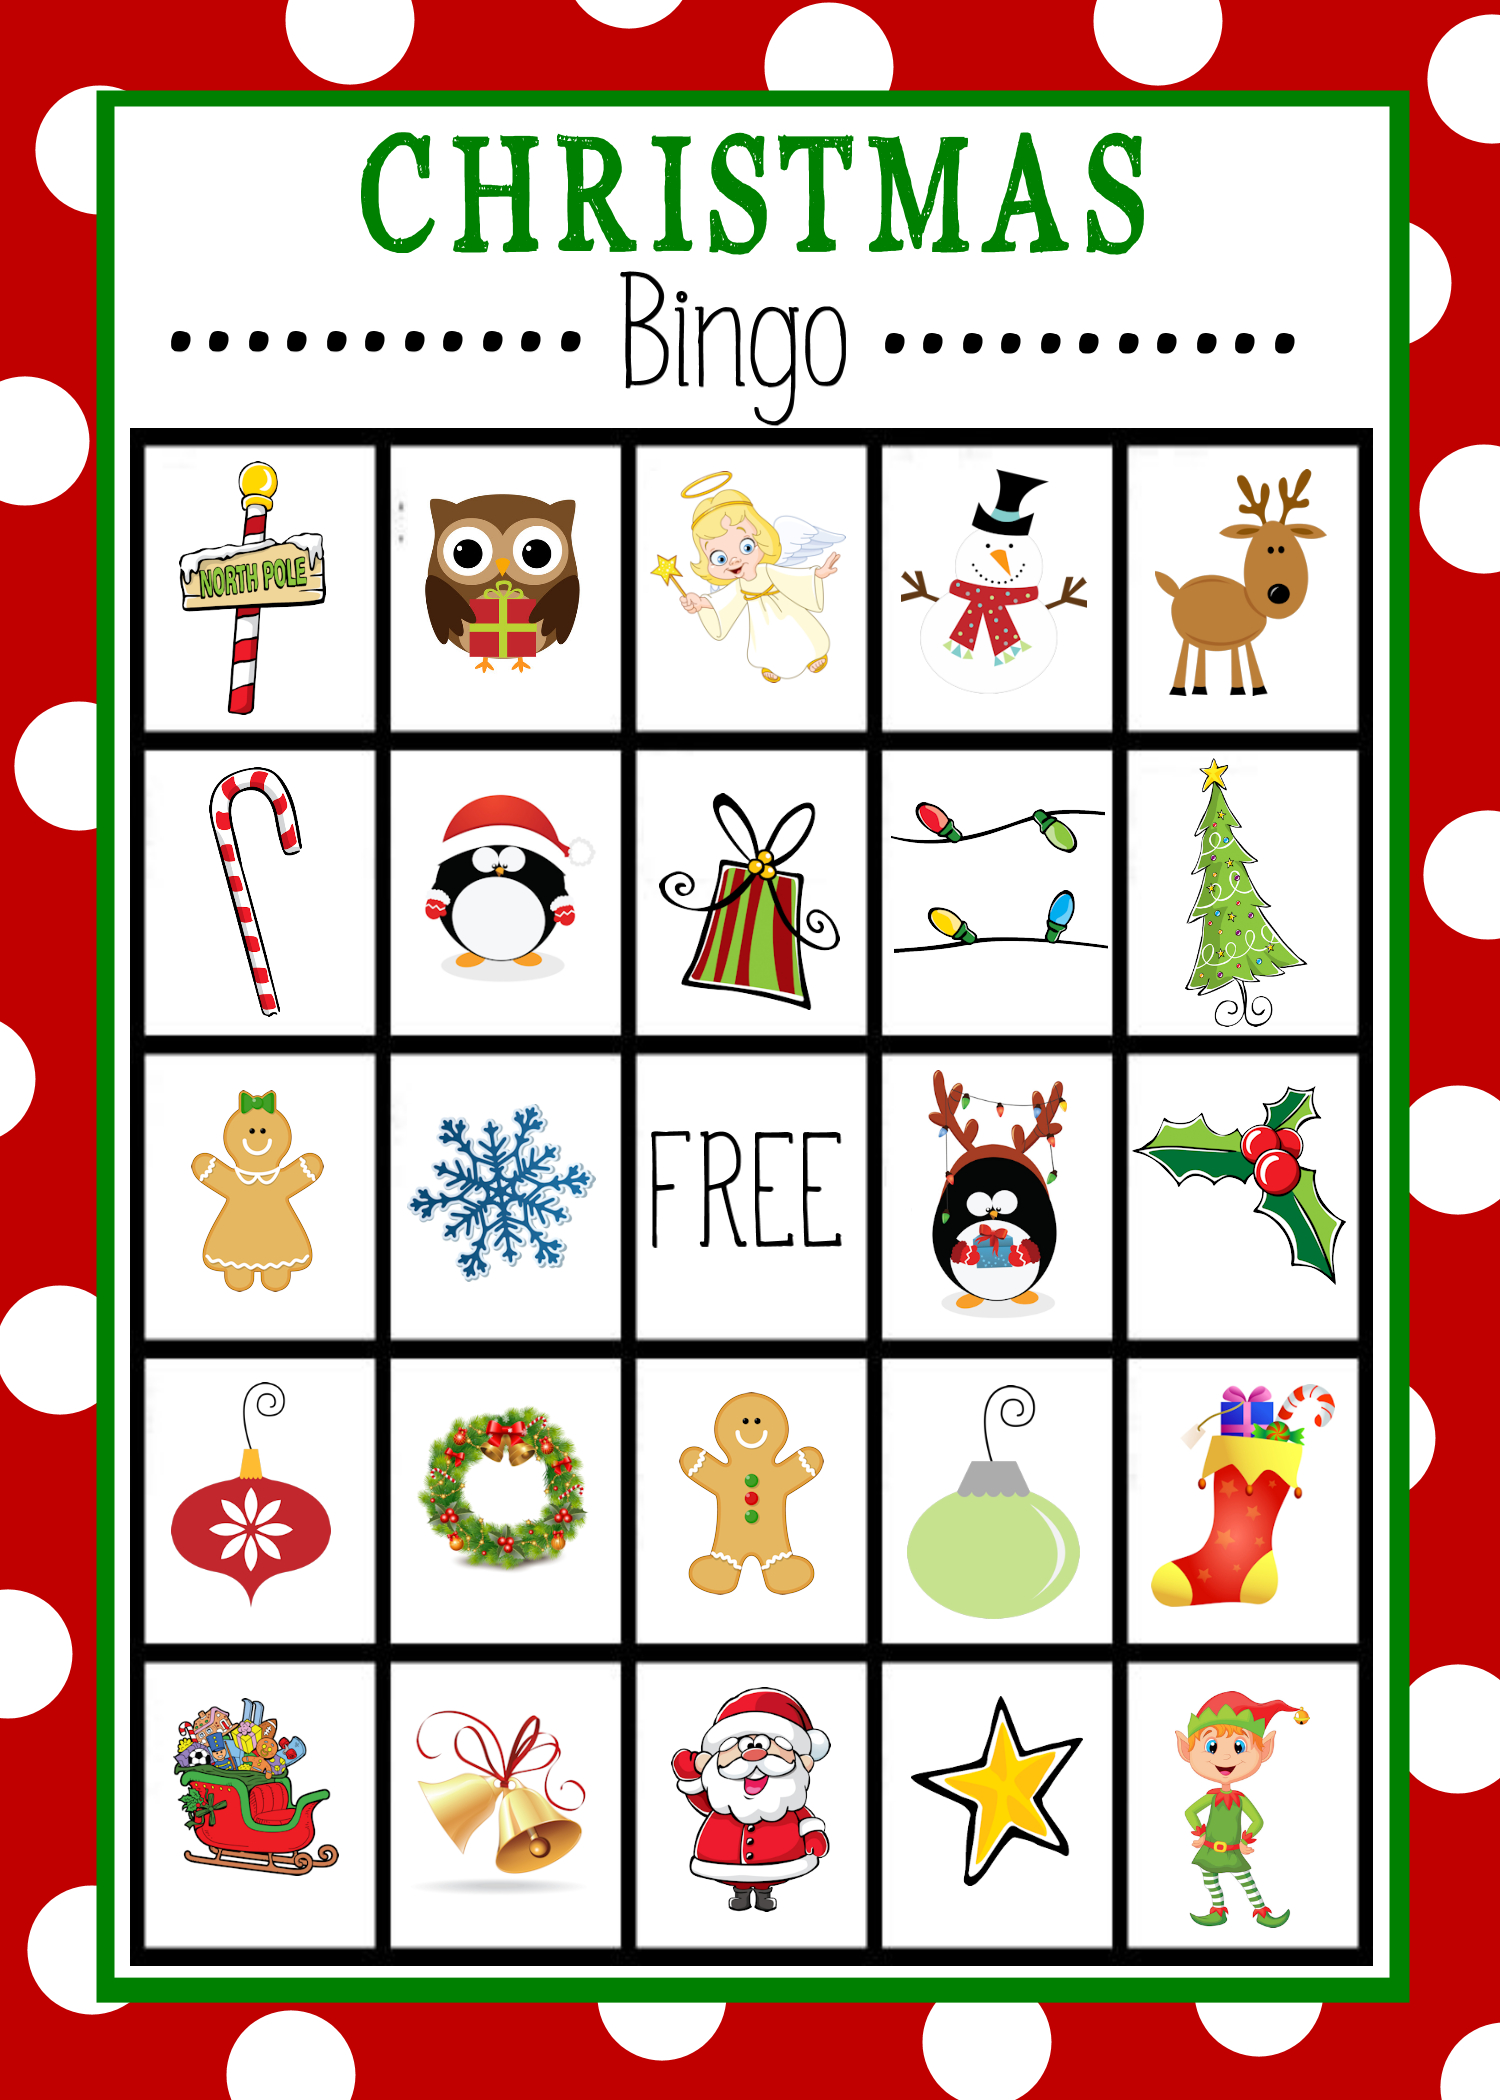 Free Printable Christmas Bingo Game | Christmas | Pinterest - Free Bingo Patterns Printable